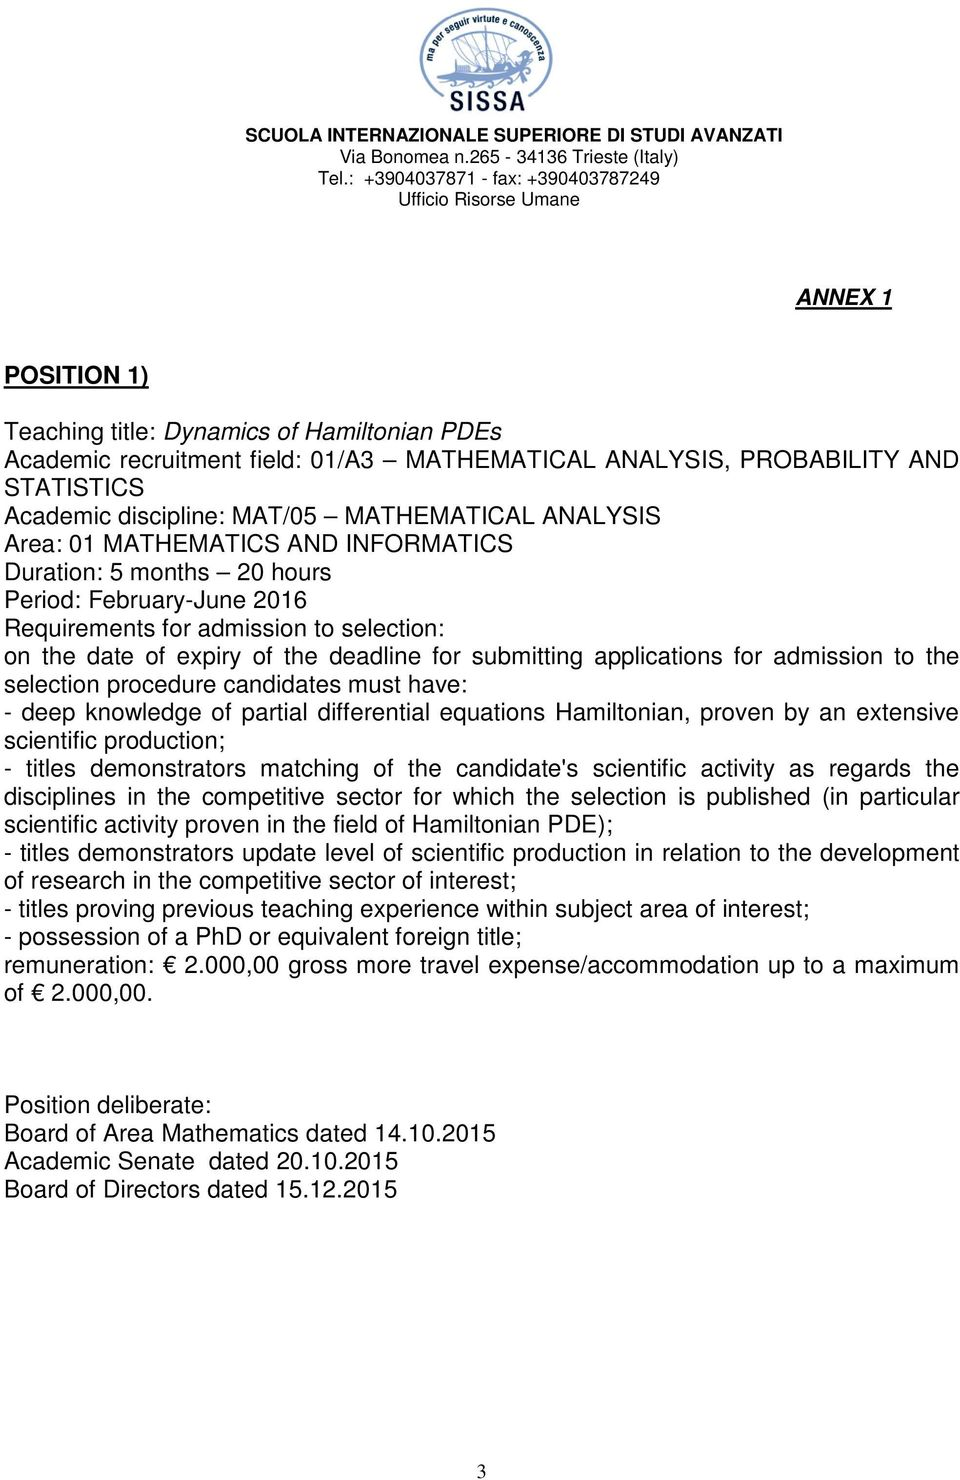 differential equations Hamiltonian, proven by an extensive scientific production; scientific activity proven in